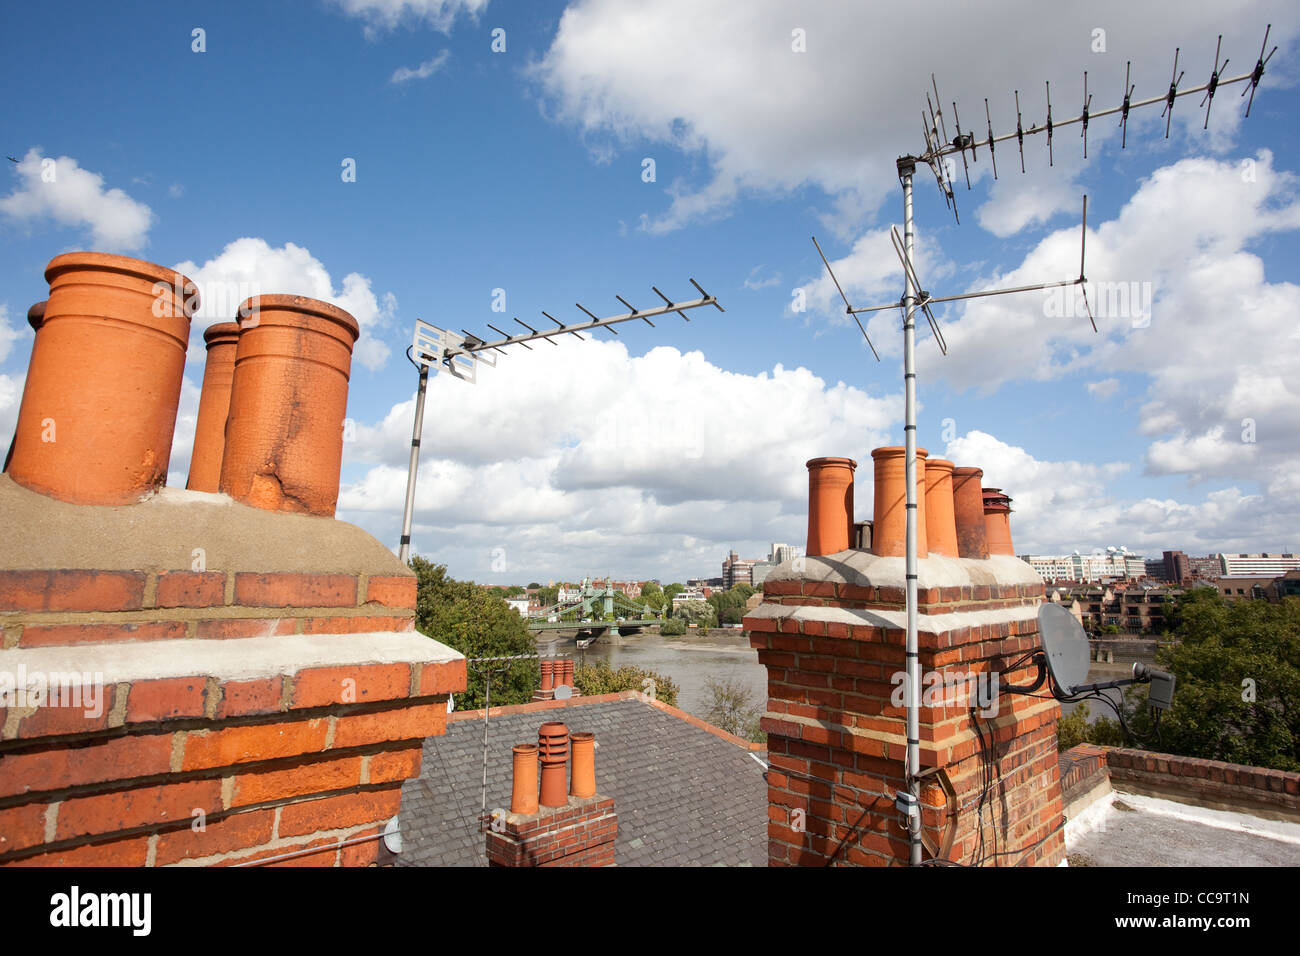 A rooftop with analogue television aerials overlooking Hammersmith Bridge, London, UK. Photo:Jeff Gilbert - Stock Image